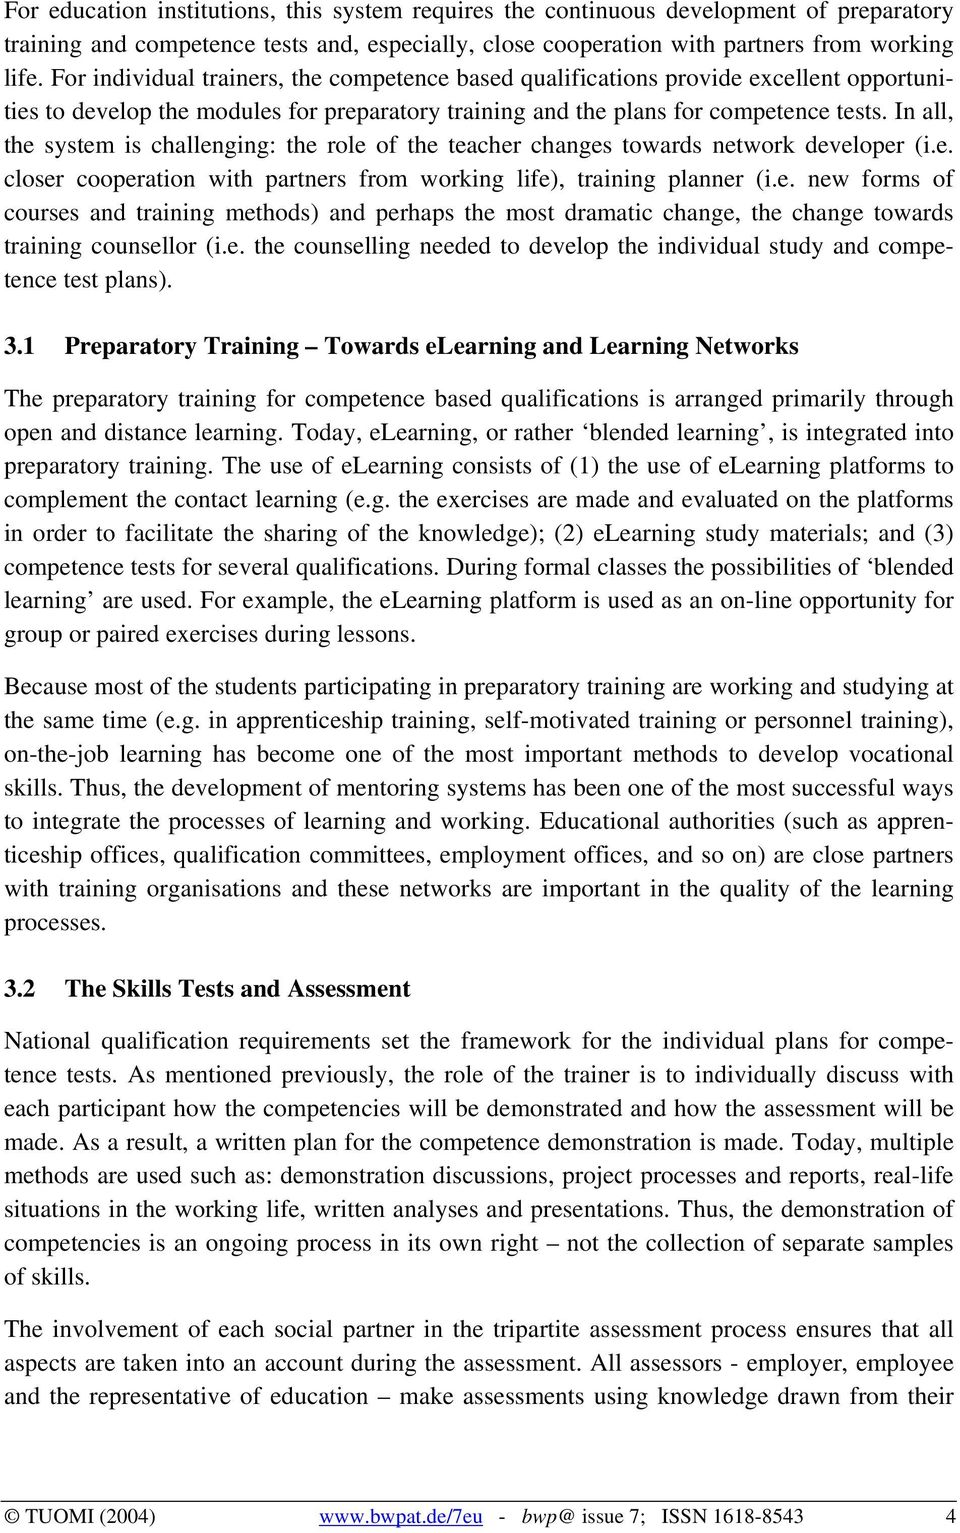 In all, the system is challenging: the role of the teacher changes towards network developer (i.e. closer cooperation with partners from working life), training planner (i.e. new forms of courses and training methods) and perhaps the most dramatic change, the change towards training counsellor (i.